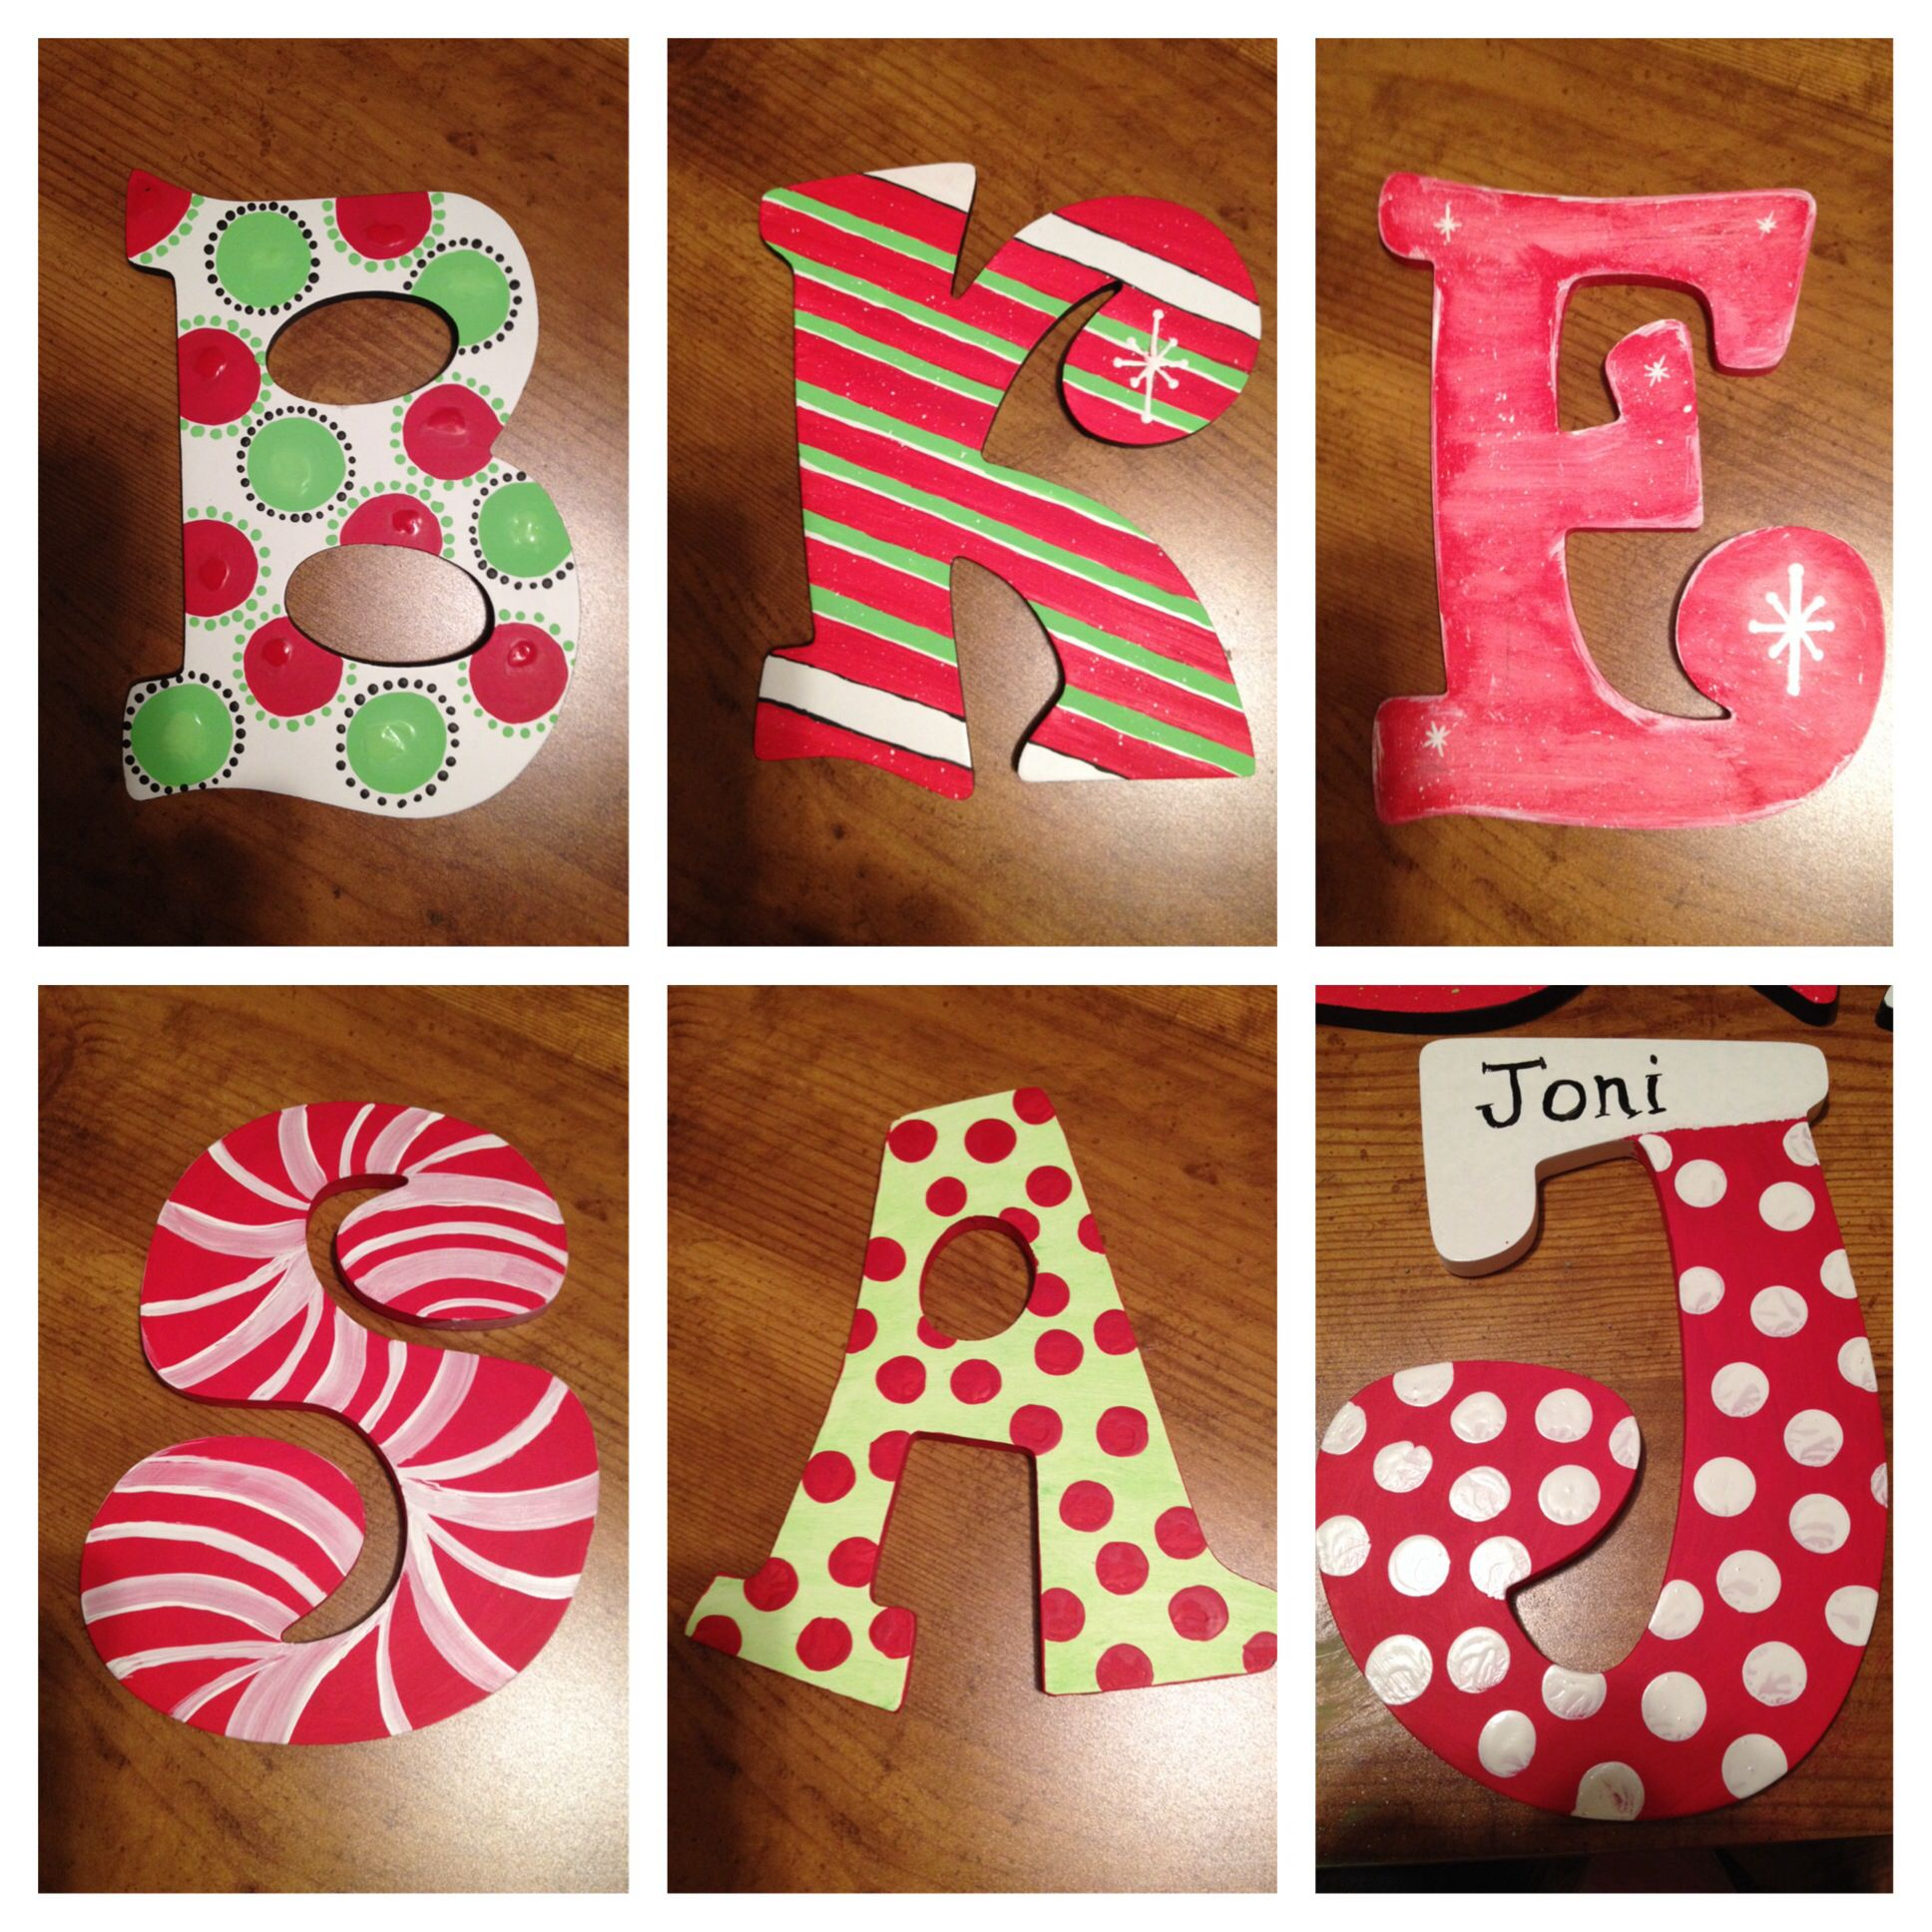 Hand Painted Wooden Letters Painting Wooden Letters Painted